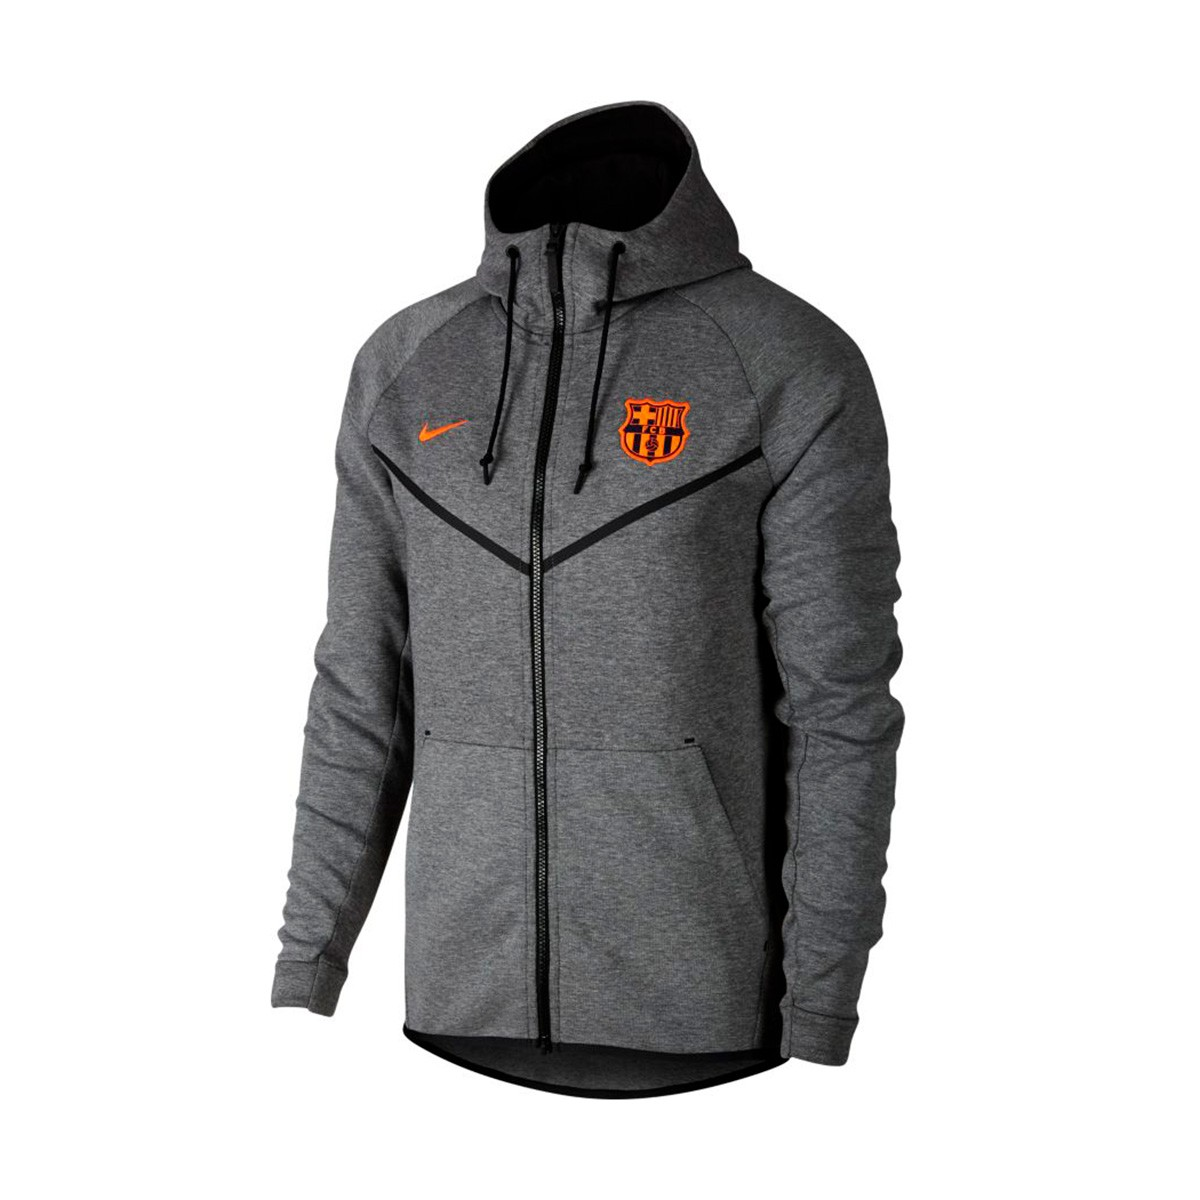 5ffd7679f8133 Chaqueta Nike FC Barcelona NSW 2017-2018 Carbon heather-Hyper crimson -  Tienda de fútbol Fútbol Emotion